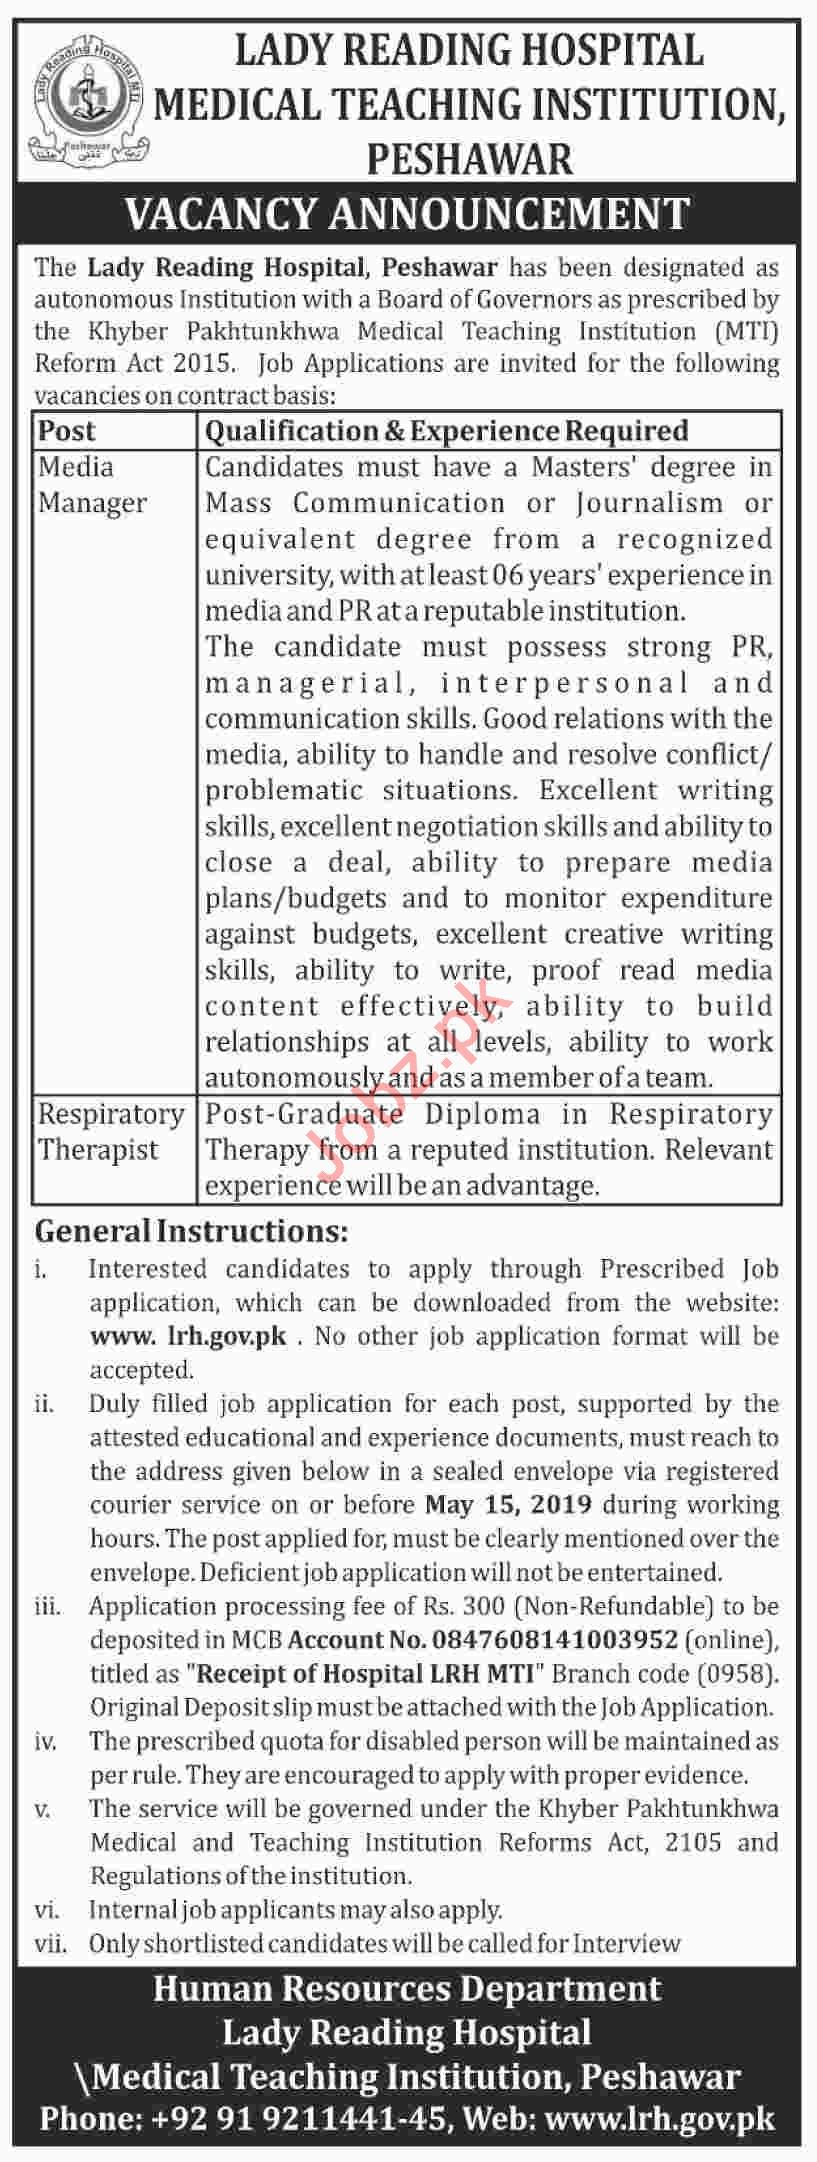 Lady Reading Hospital LRH Peshawar Jobs for Media Managers